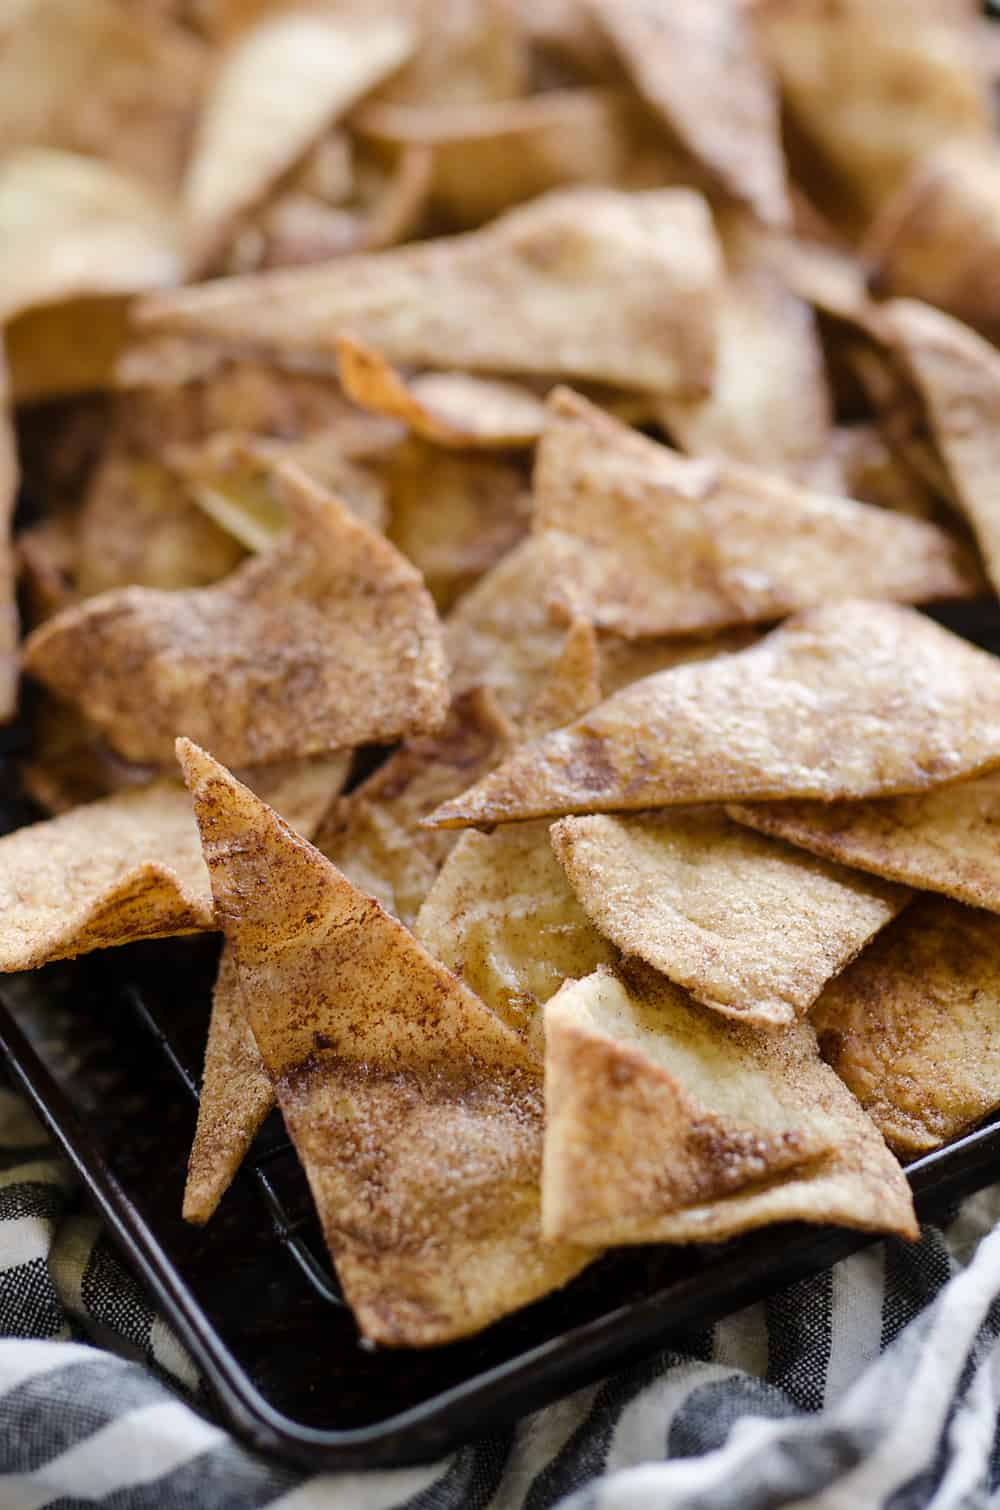 Baked Cinnamon Sugar Tortilla Chips baking sheet